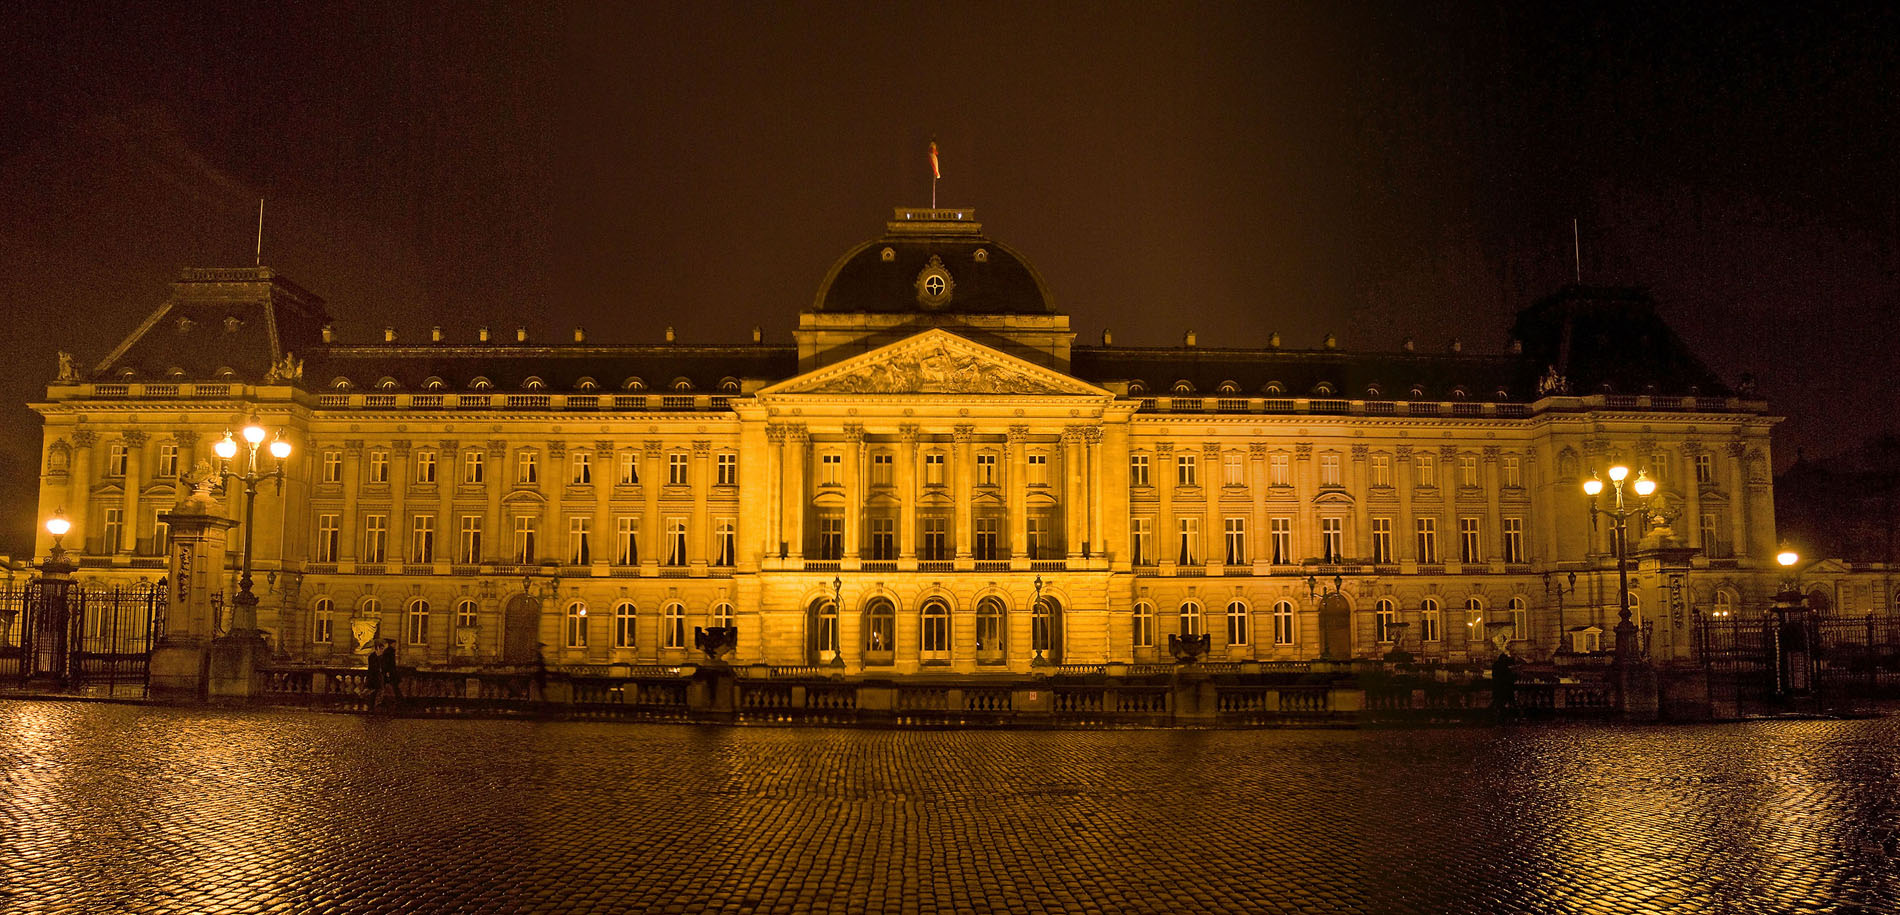 HQ Royal Palace Of Brussels Wallpapers | File 479.22Kb